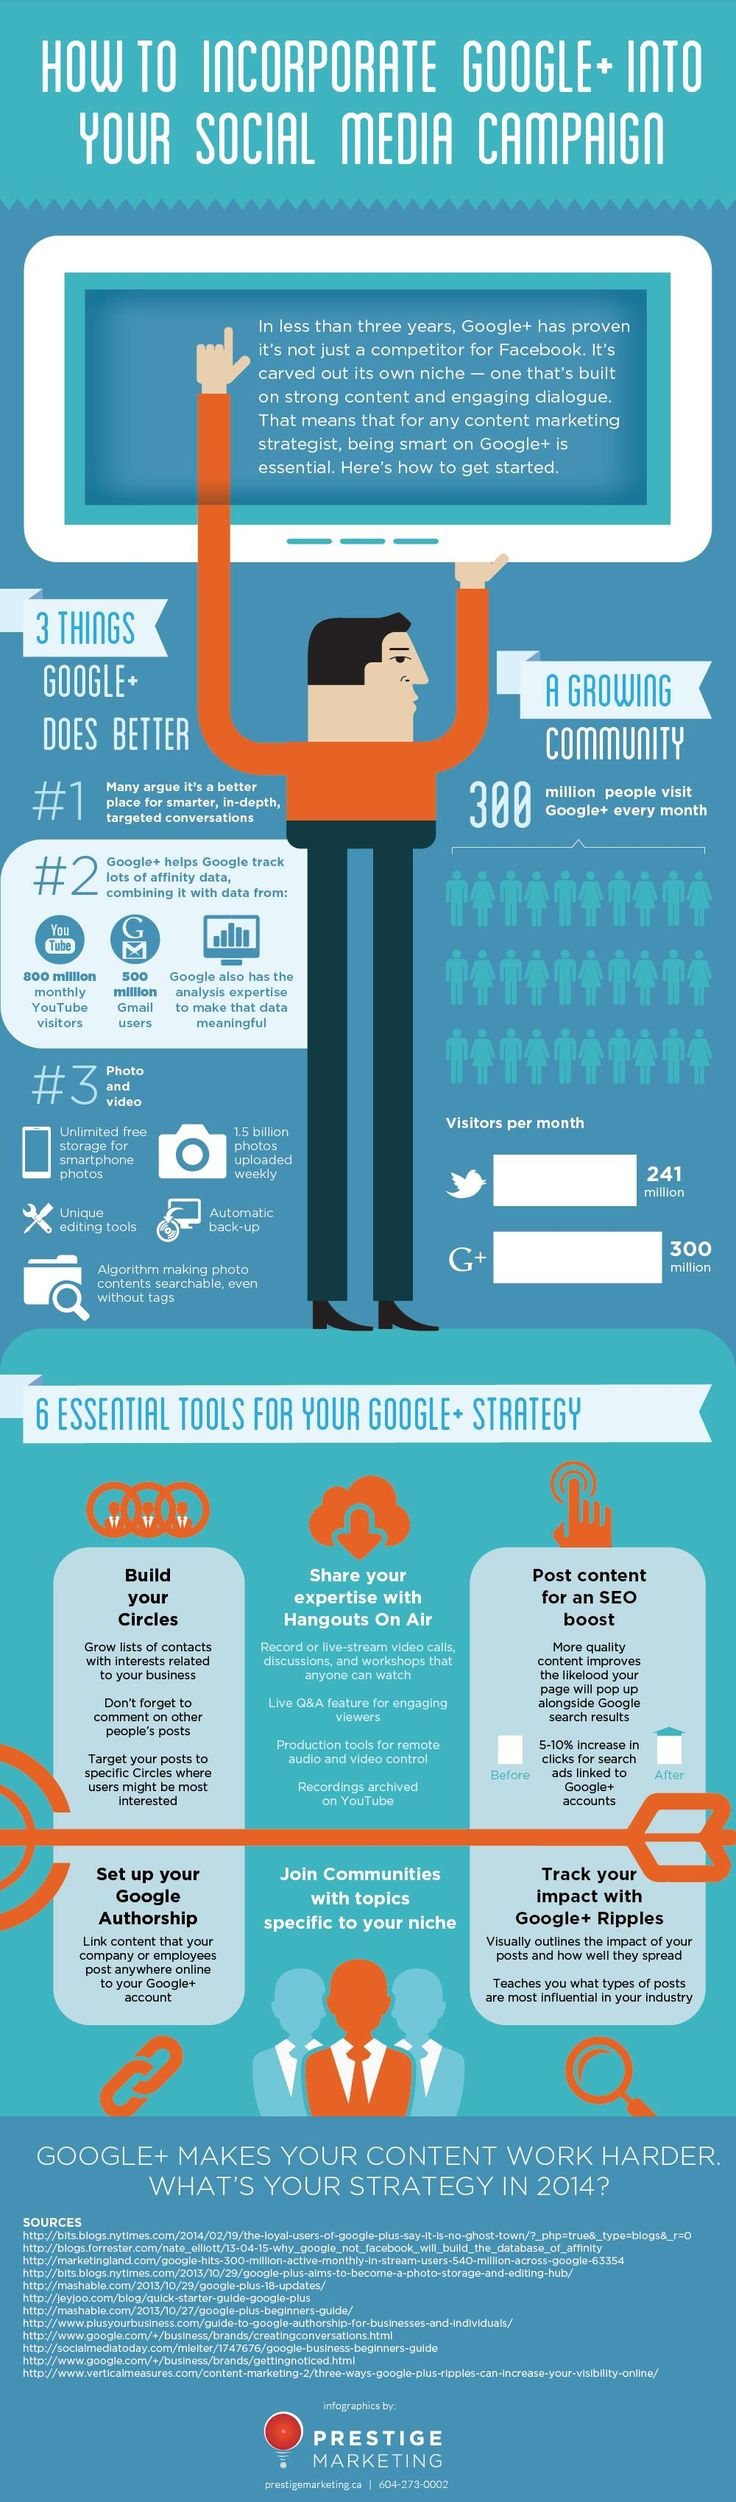 How to Incorporate Google+ Into Your Social Media Campaign [Infographic]